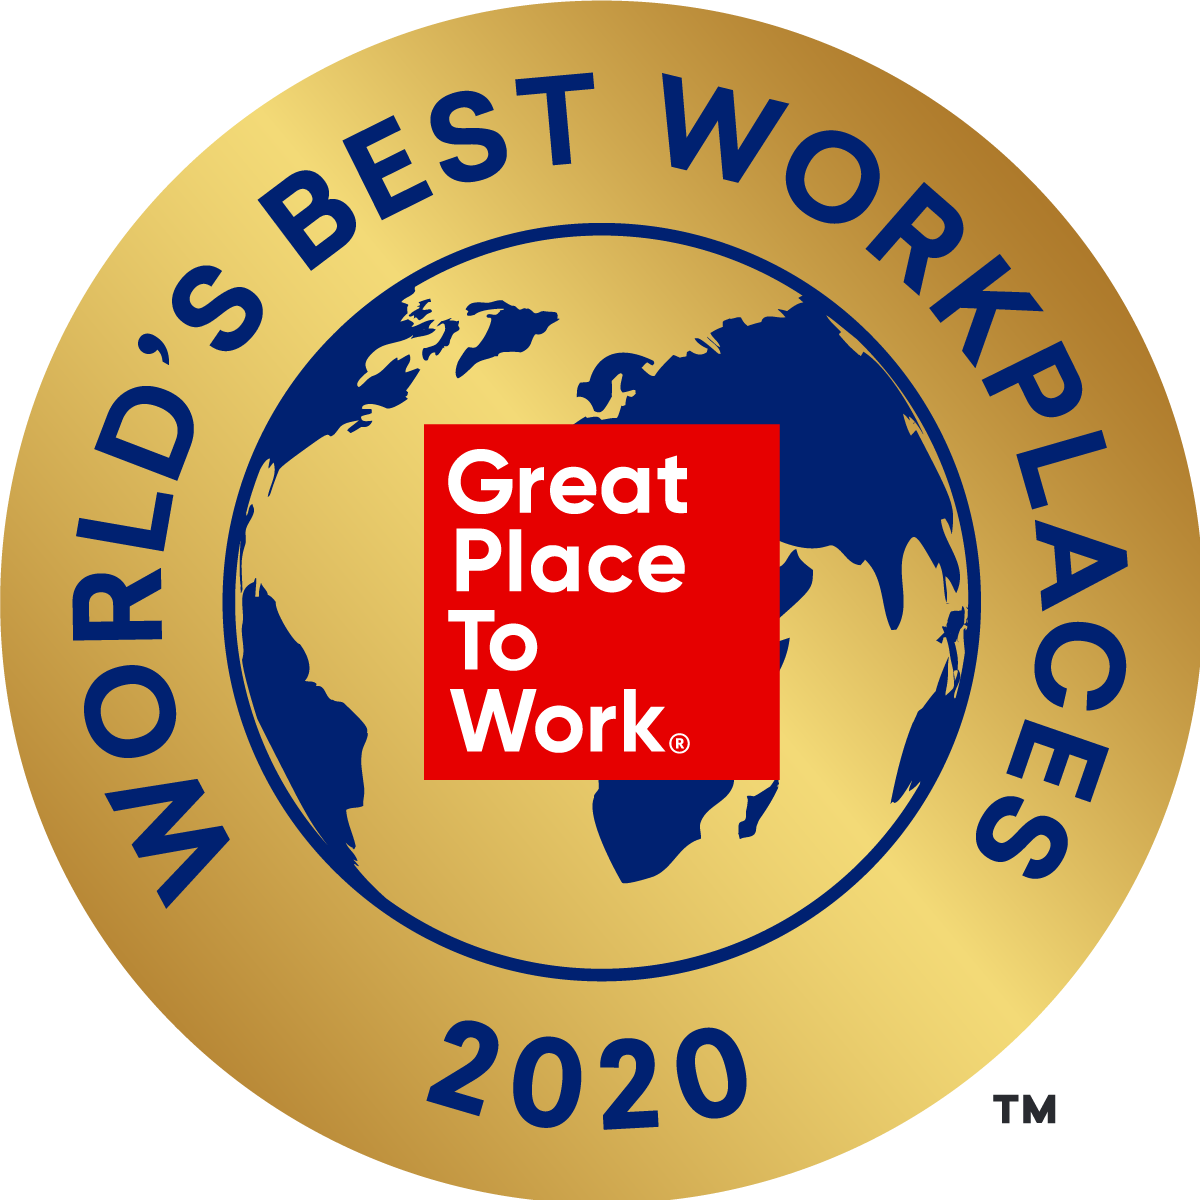 World's Best Workplaces 2020 great place to work